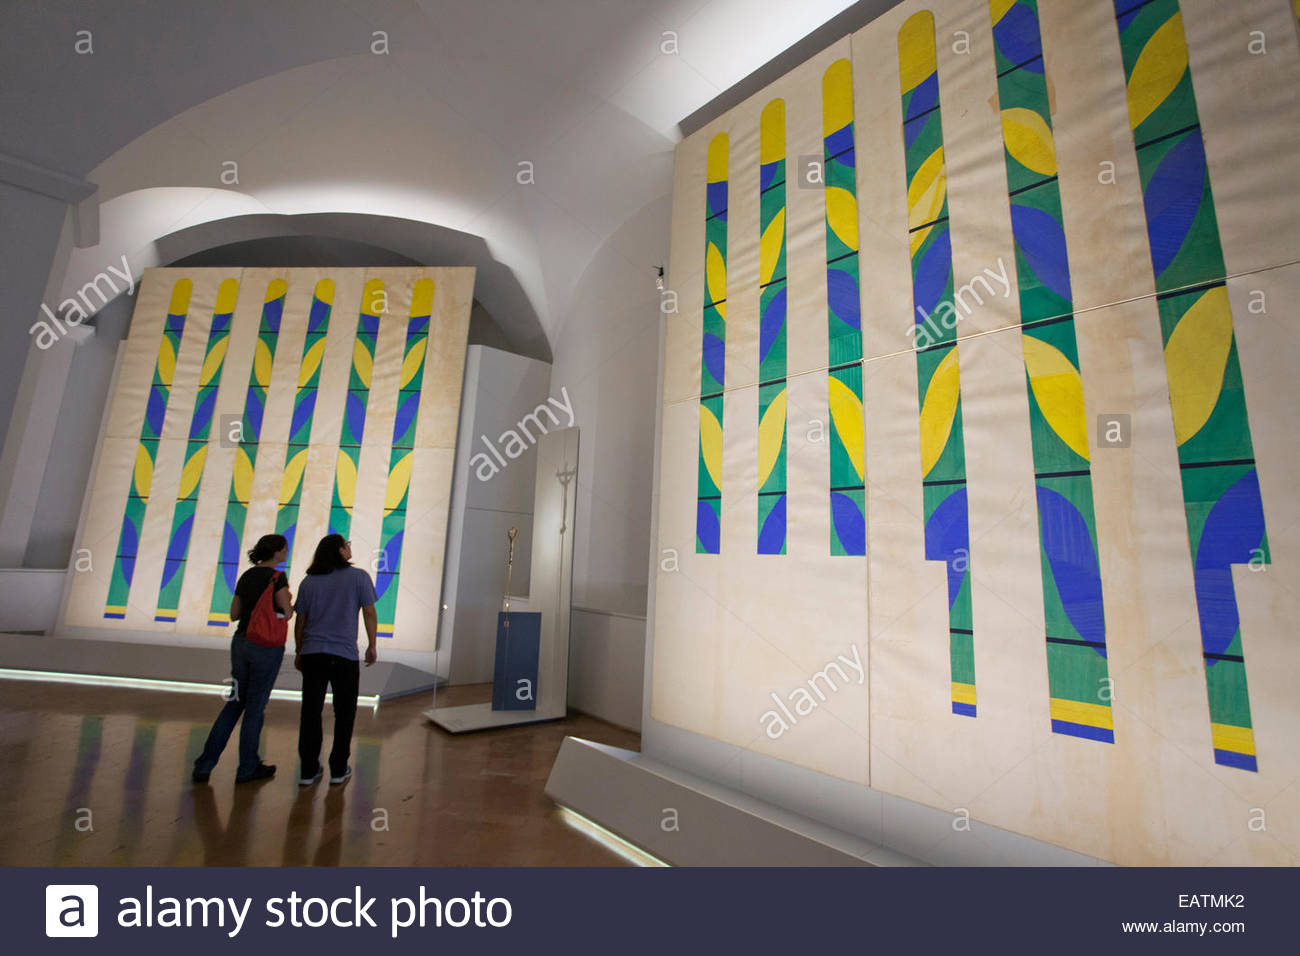 Matisse cut-outs in the Vatican Museums. - Stock Image